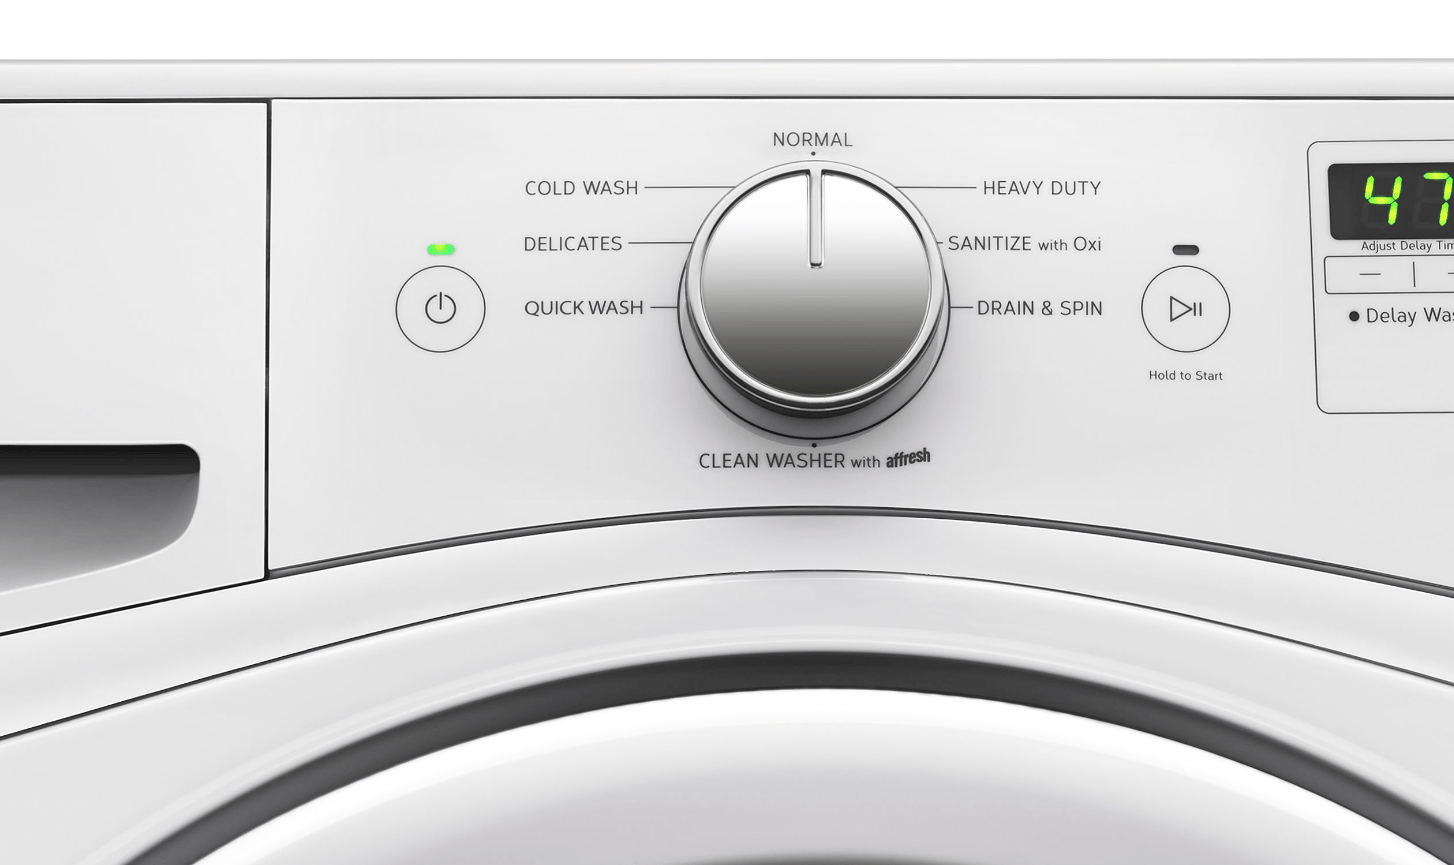 Best Whirlpool Stackable Washer And Dryer For 2018 Together With Samsung Electric Clothes Additionally Maytag Controlswhirlpool